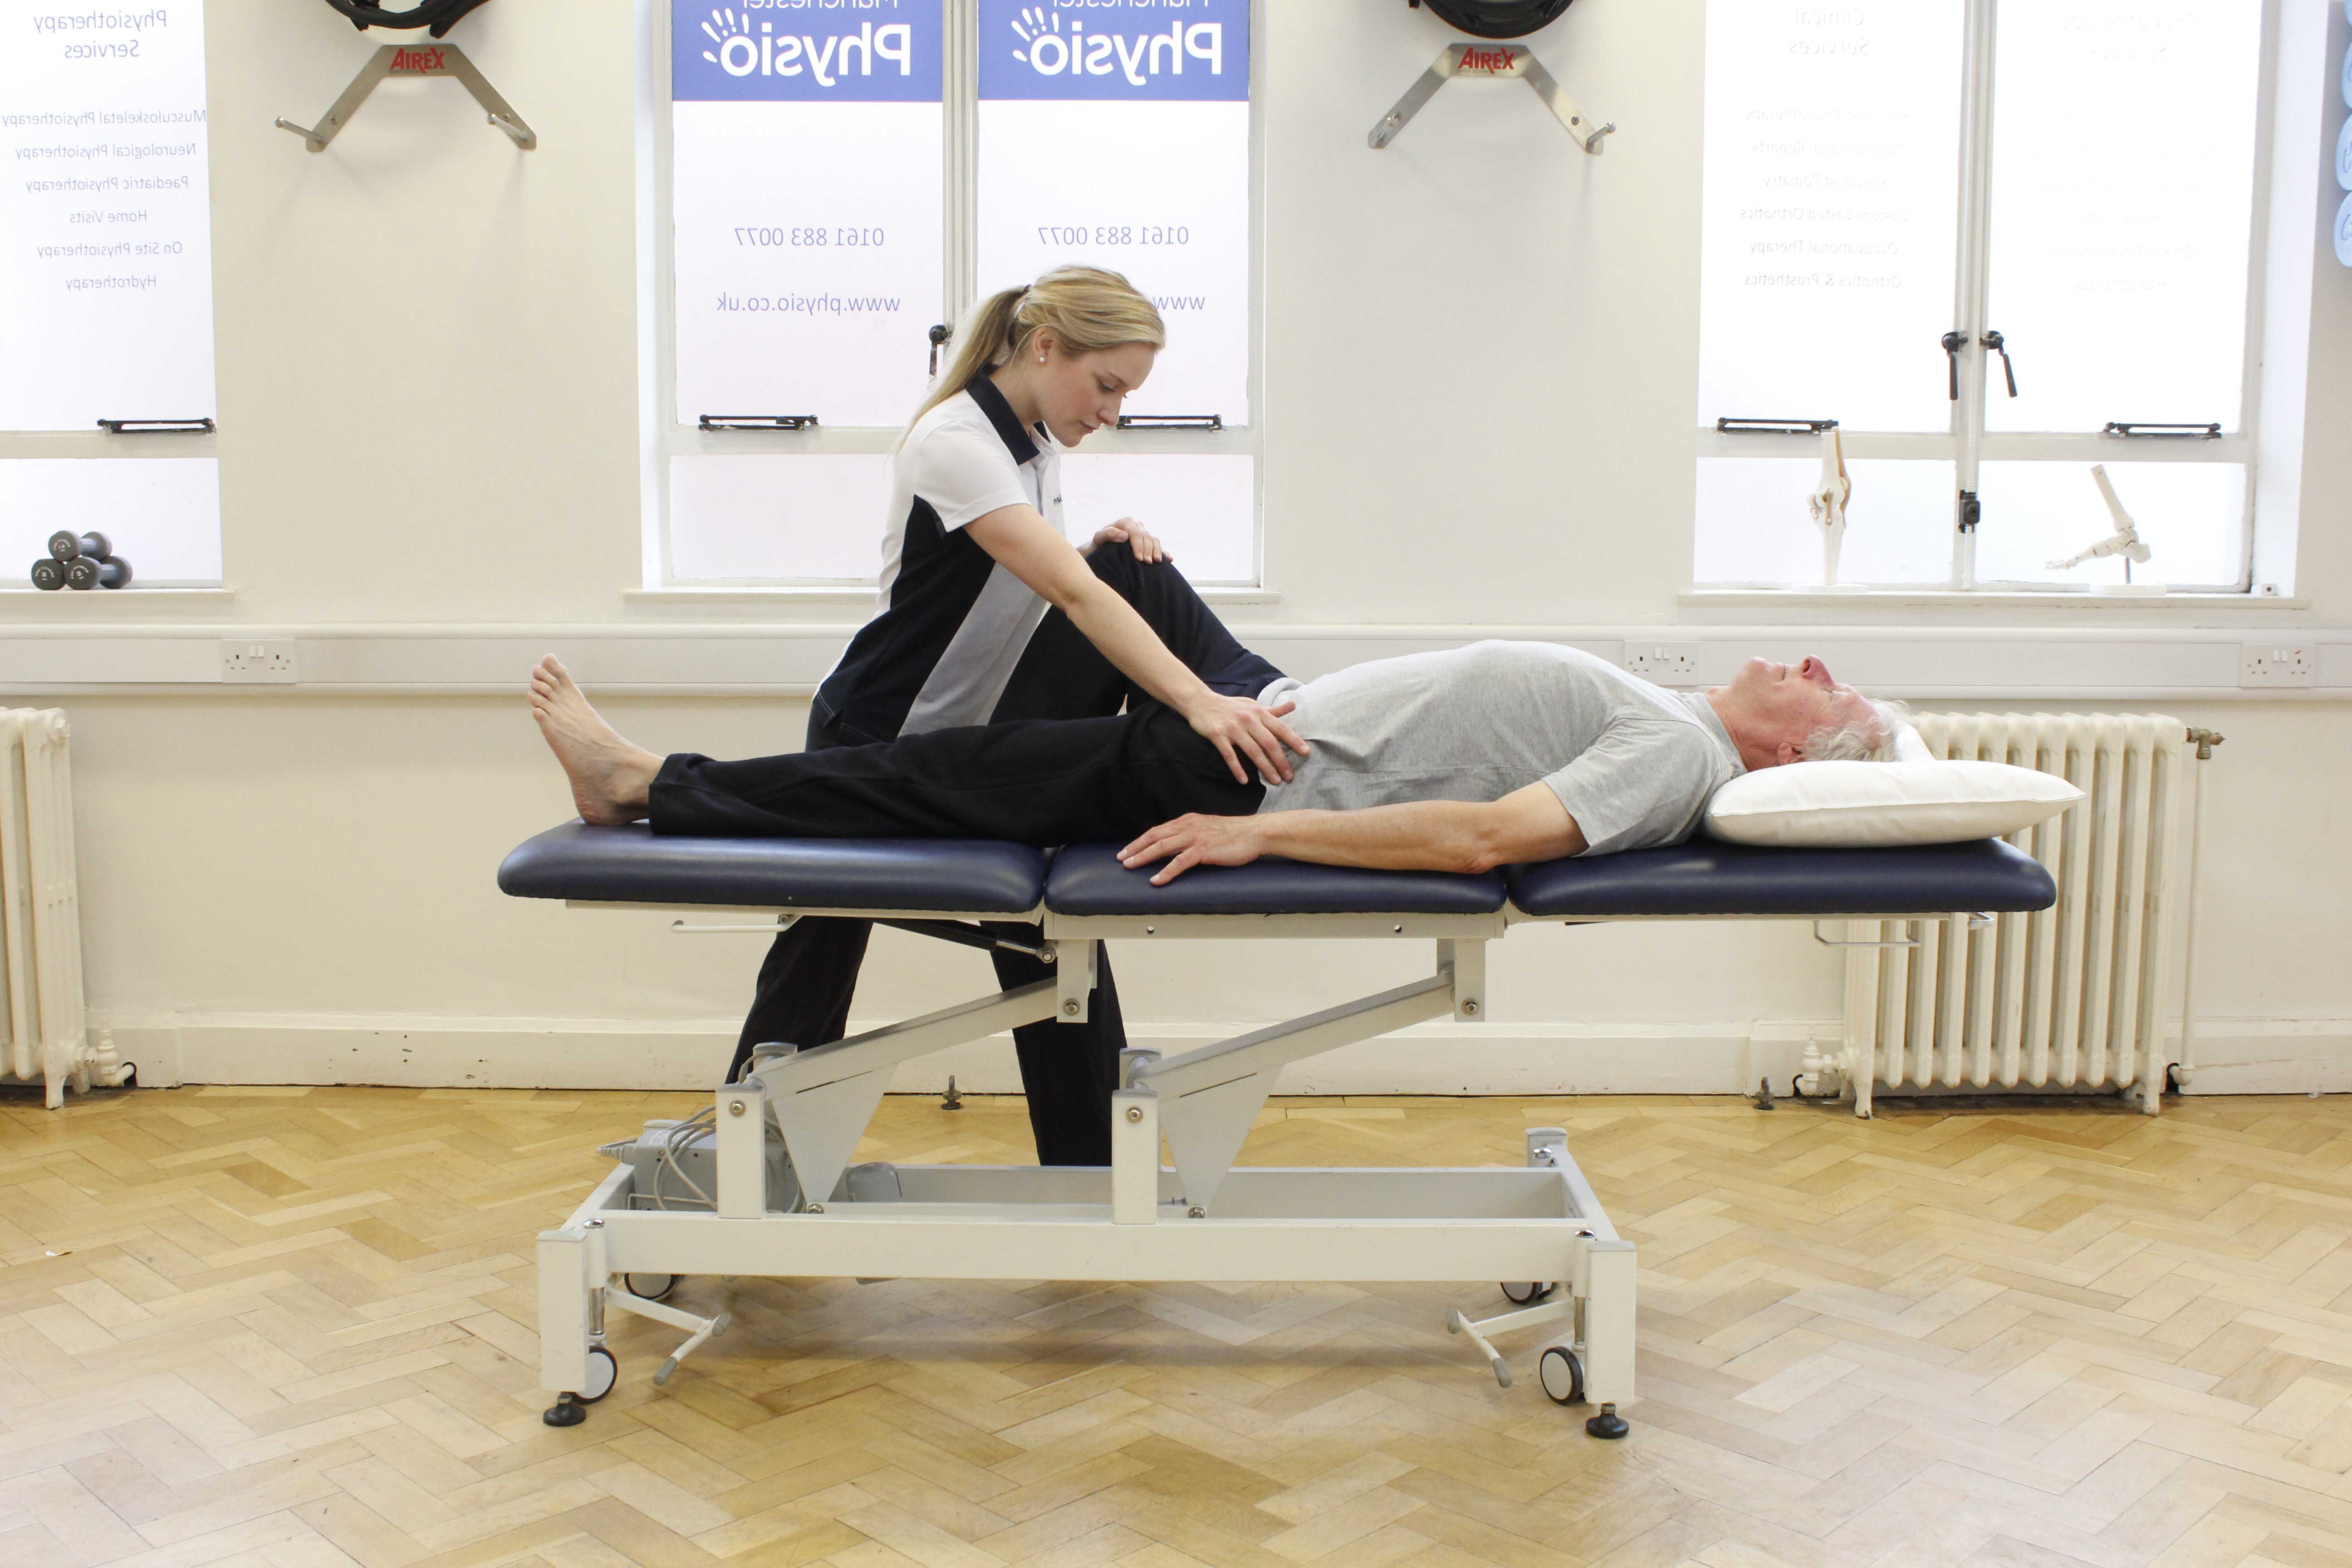 Pelvis and hip abduction stretches assisted by specialist physiotherapist